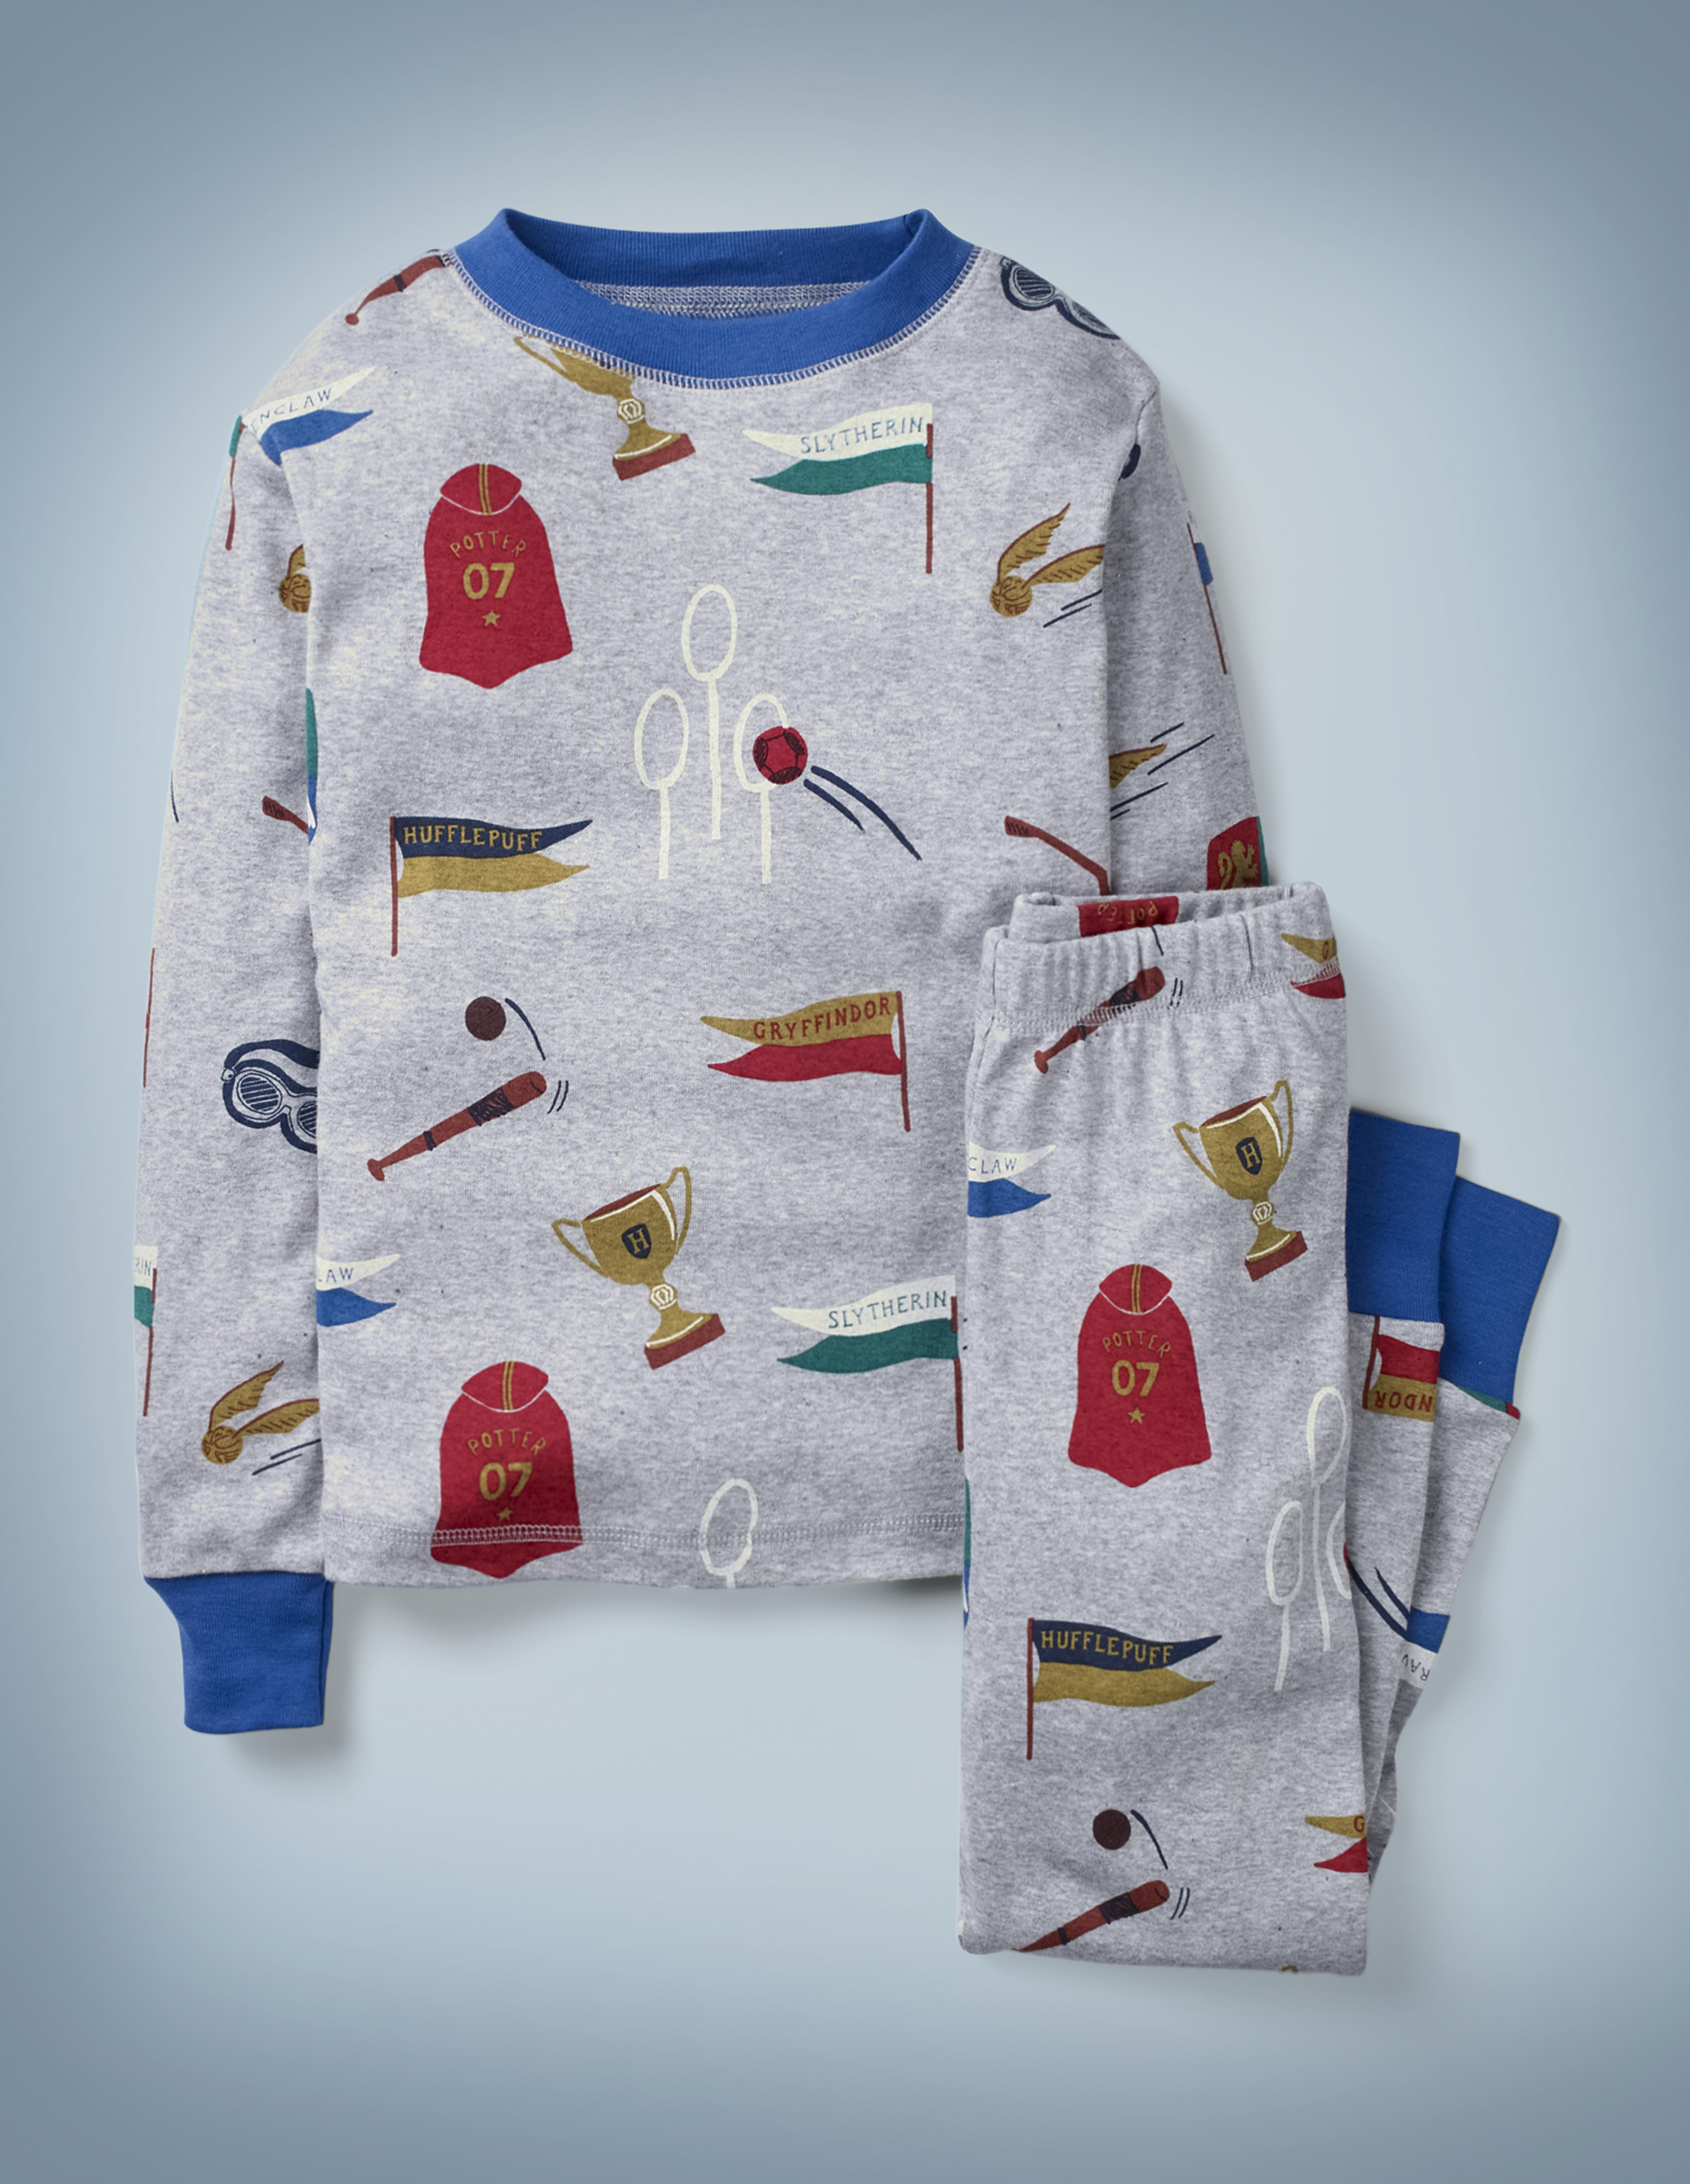 The Mini Boden Harry Potter Long John Pyjamas in gray feature all-over images of Quidditch-related items, including a Quaffle flying through the hoop, a Golden Snitch, a Quidditch Cup, and more. The top-and-bottom set retails at £24.